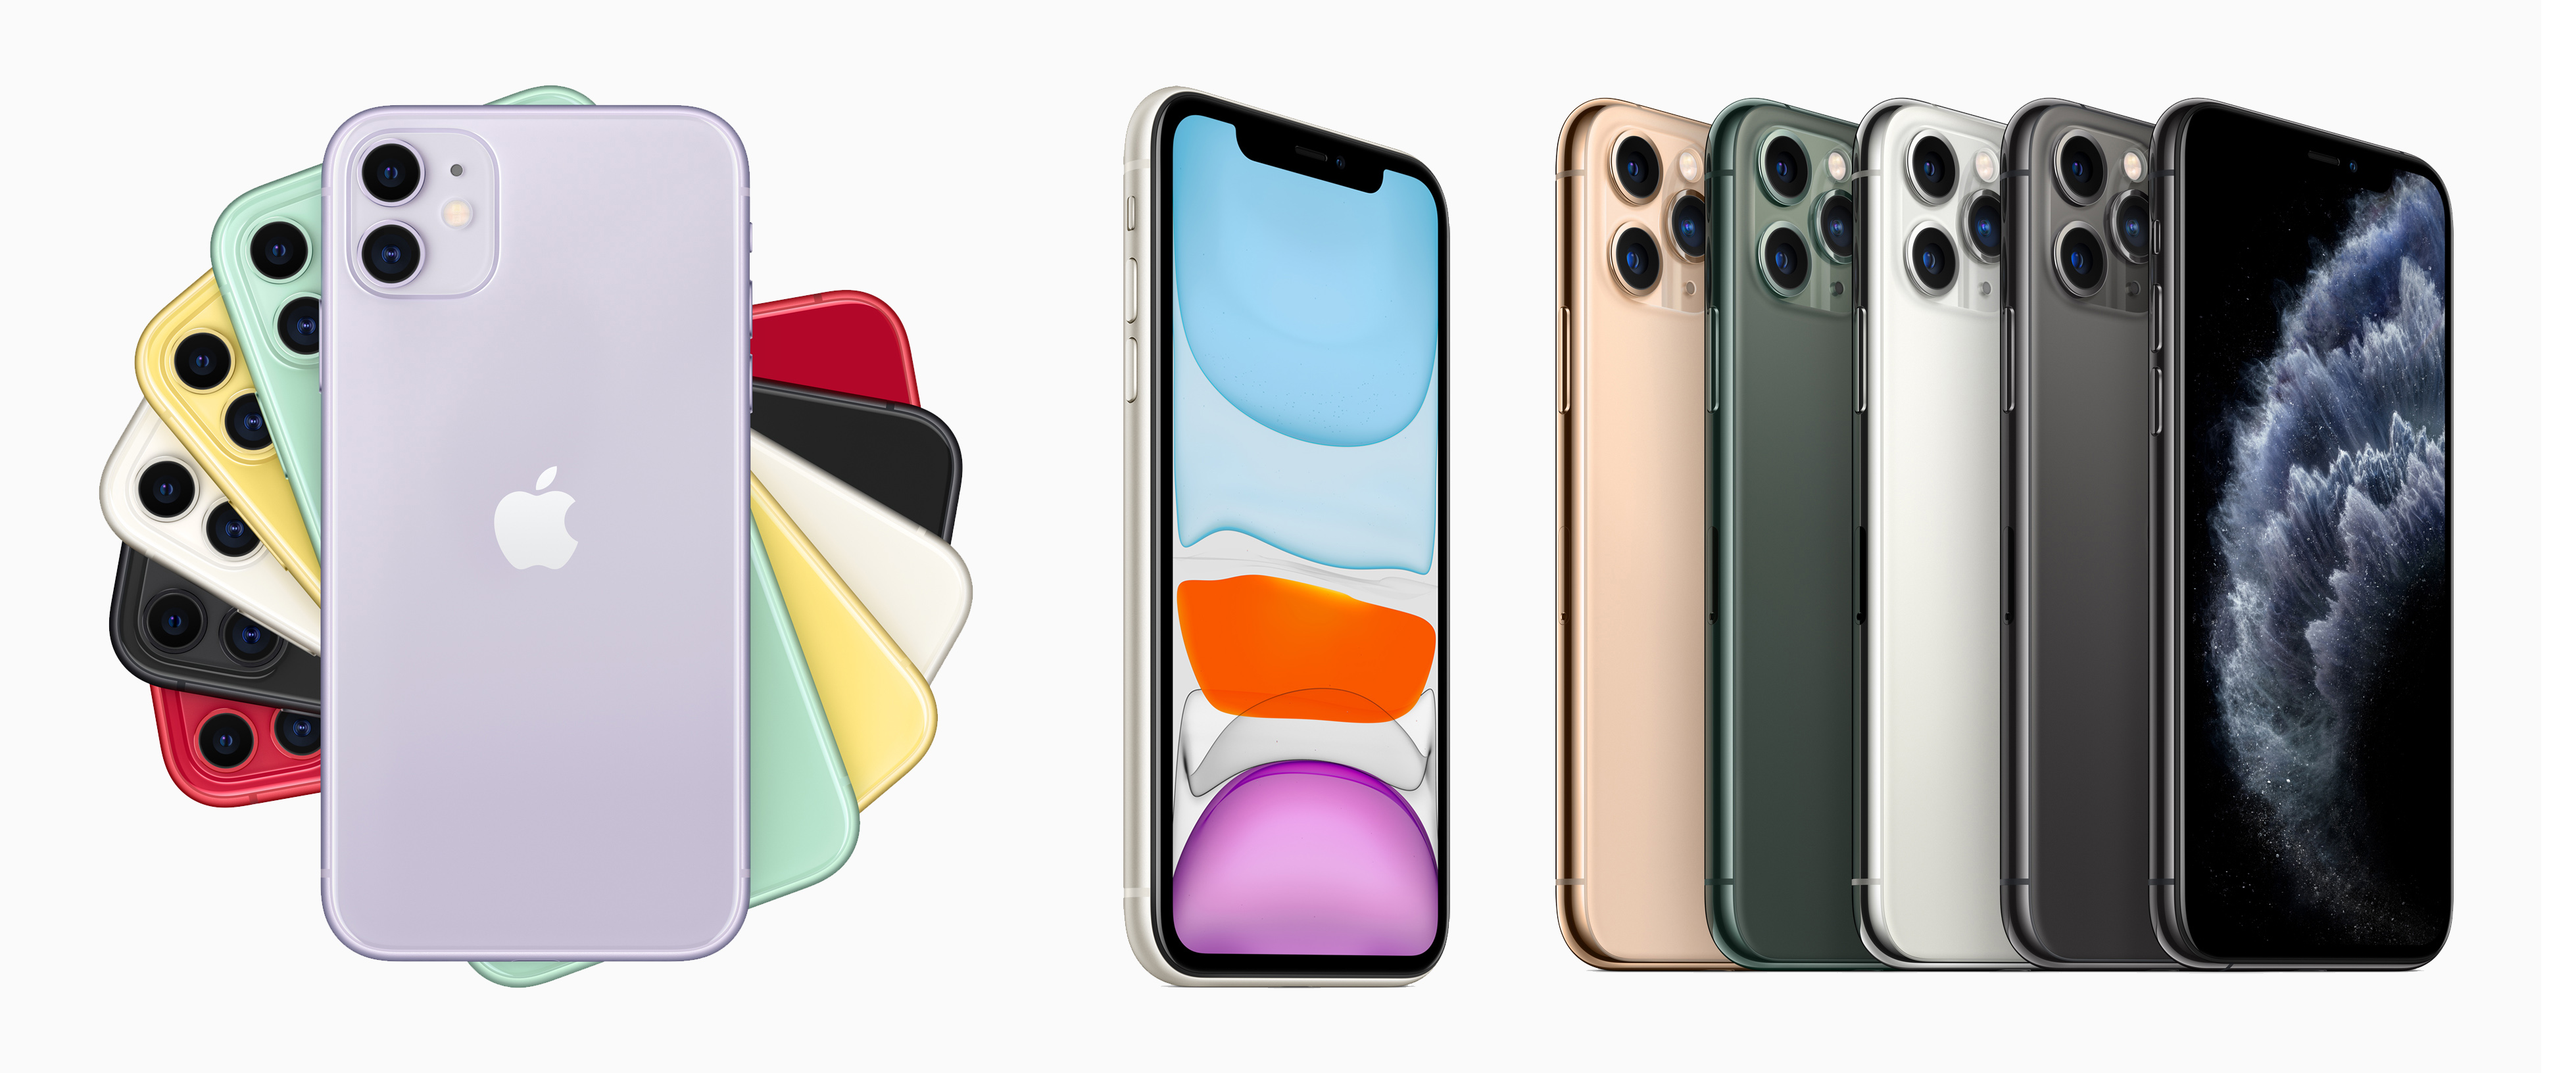 iPhone 11 Designs